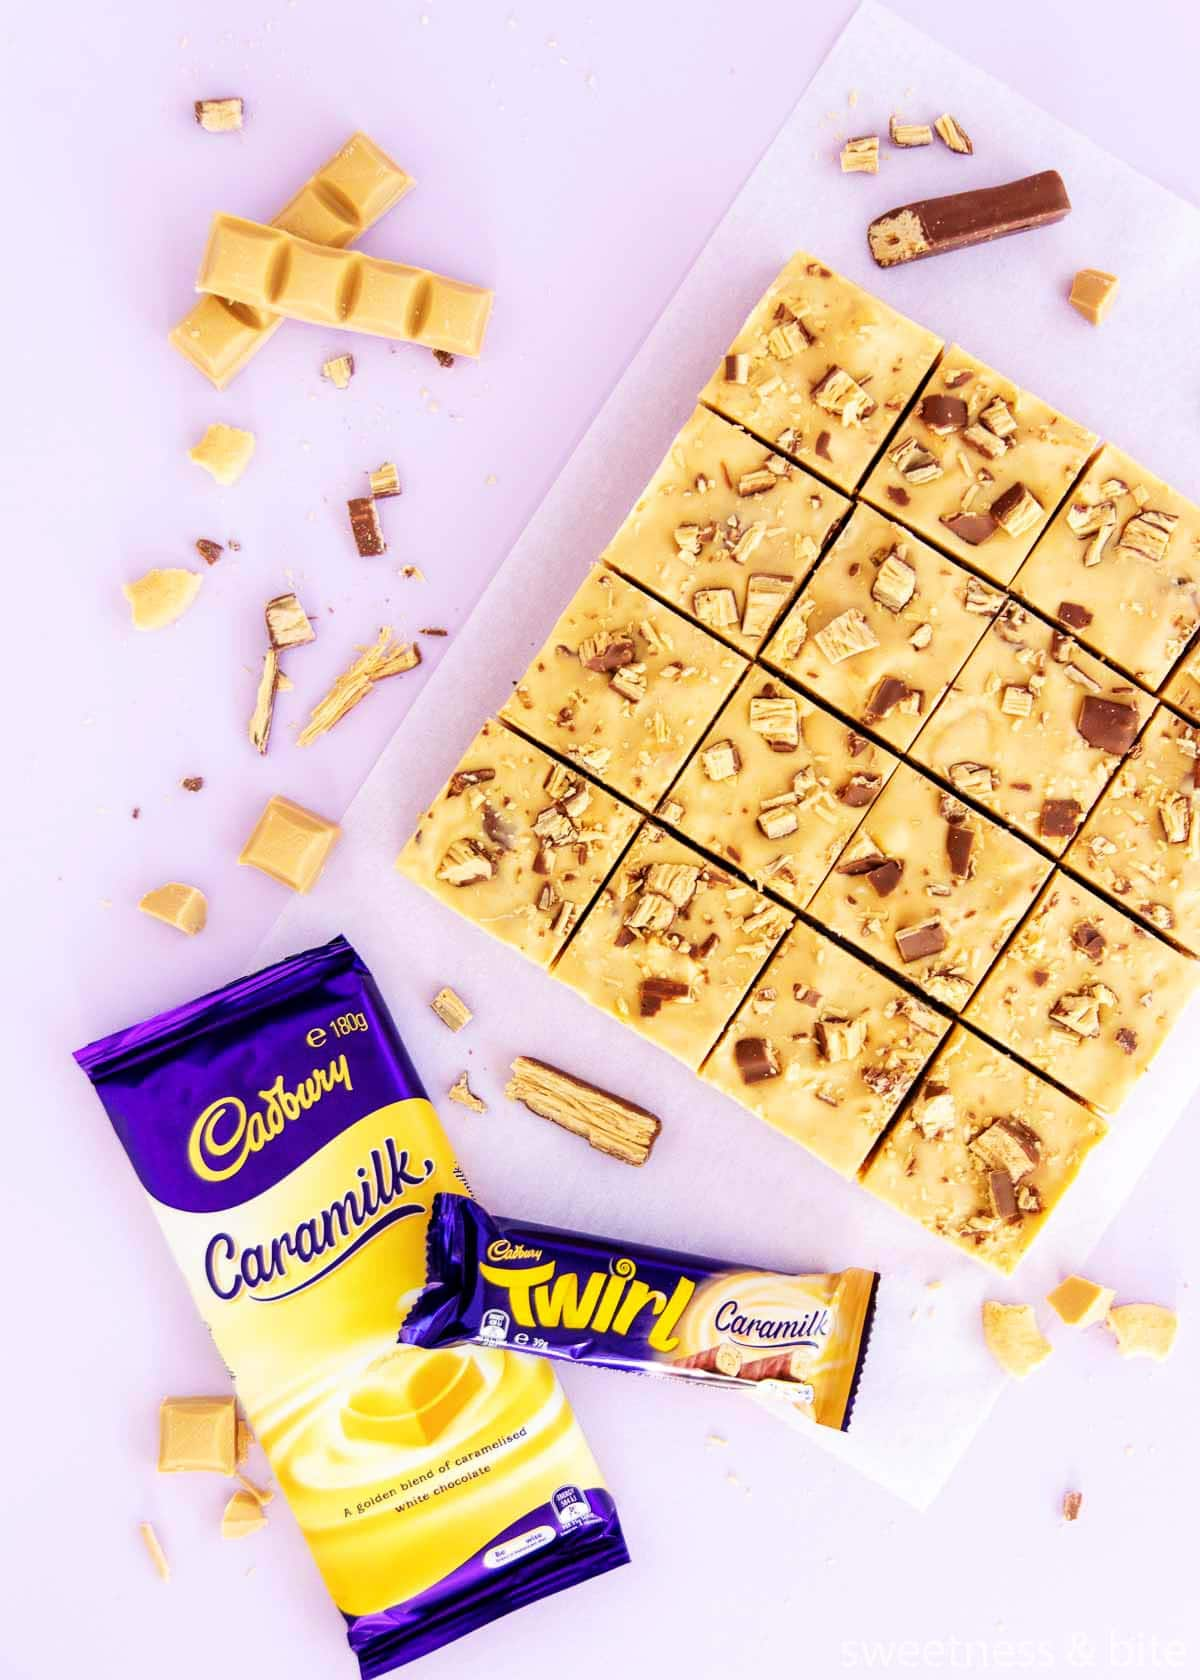 16 squares of slice, with a wrapped block of Caramilk chocolate and a Caramilk Twirl.